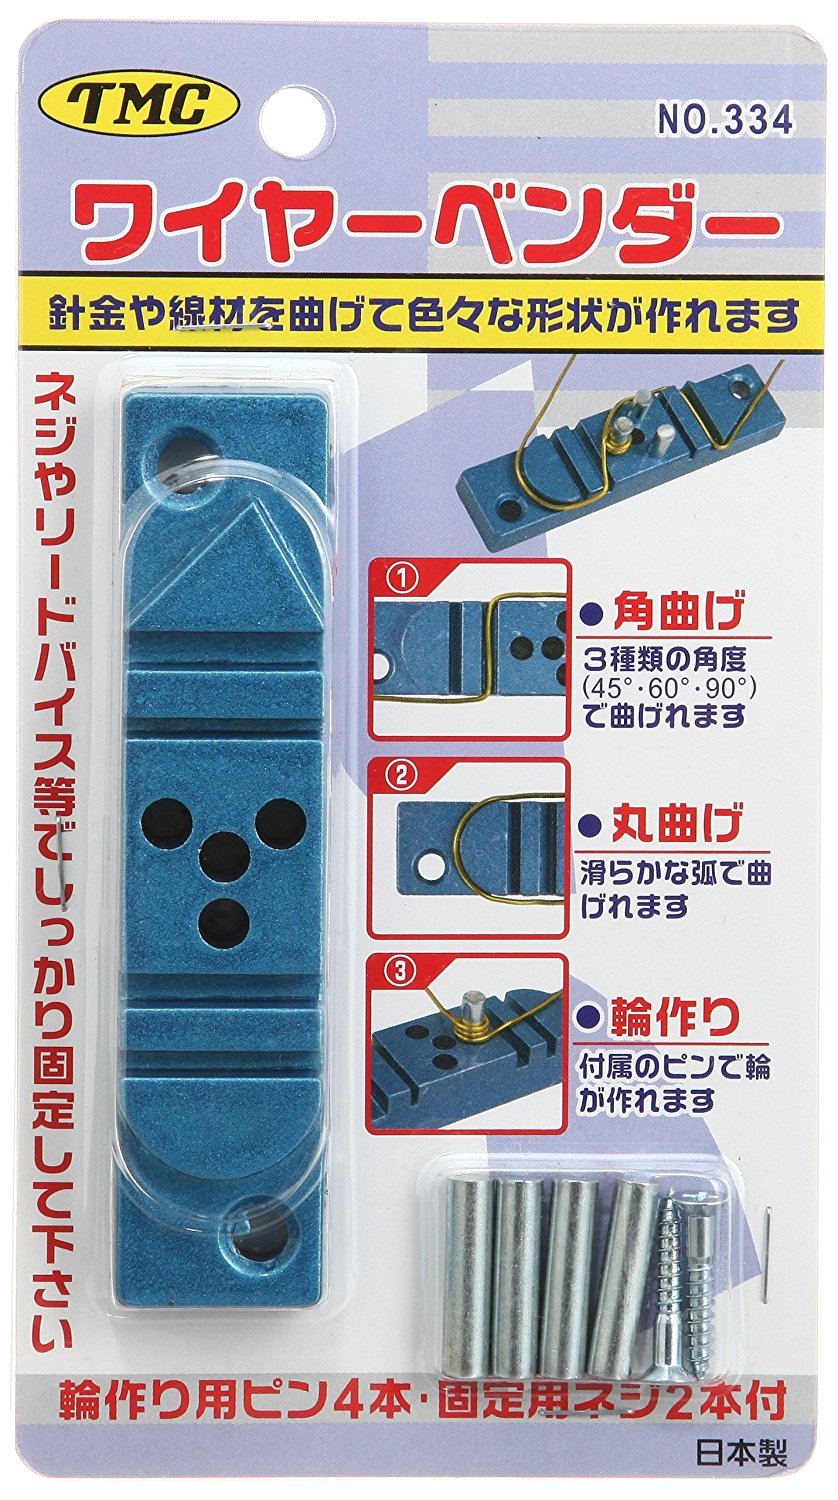 Mineshima The wire bending tool (C-04)